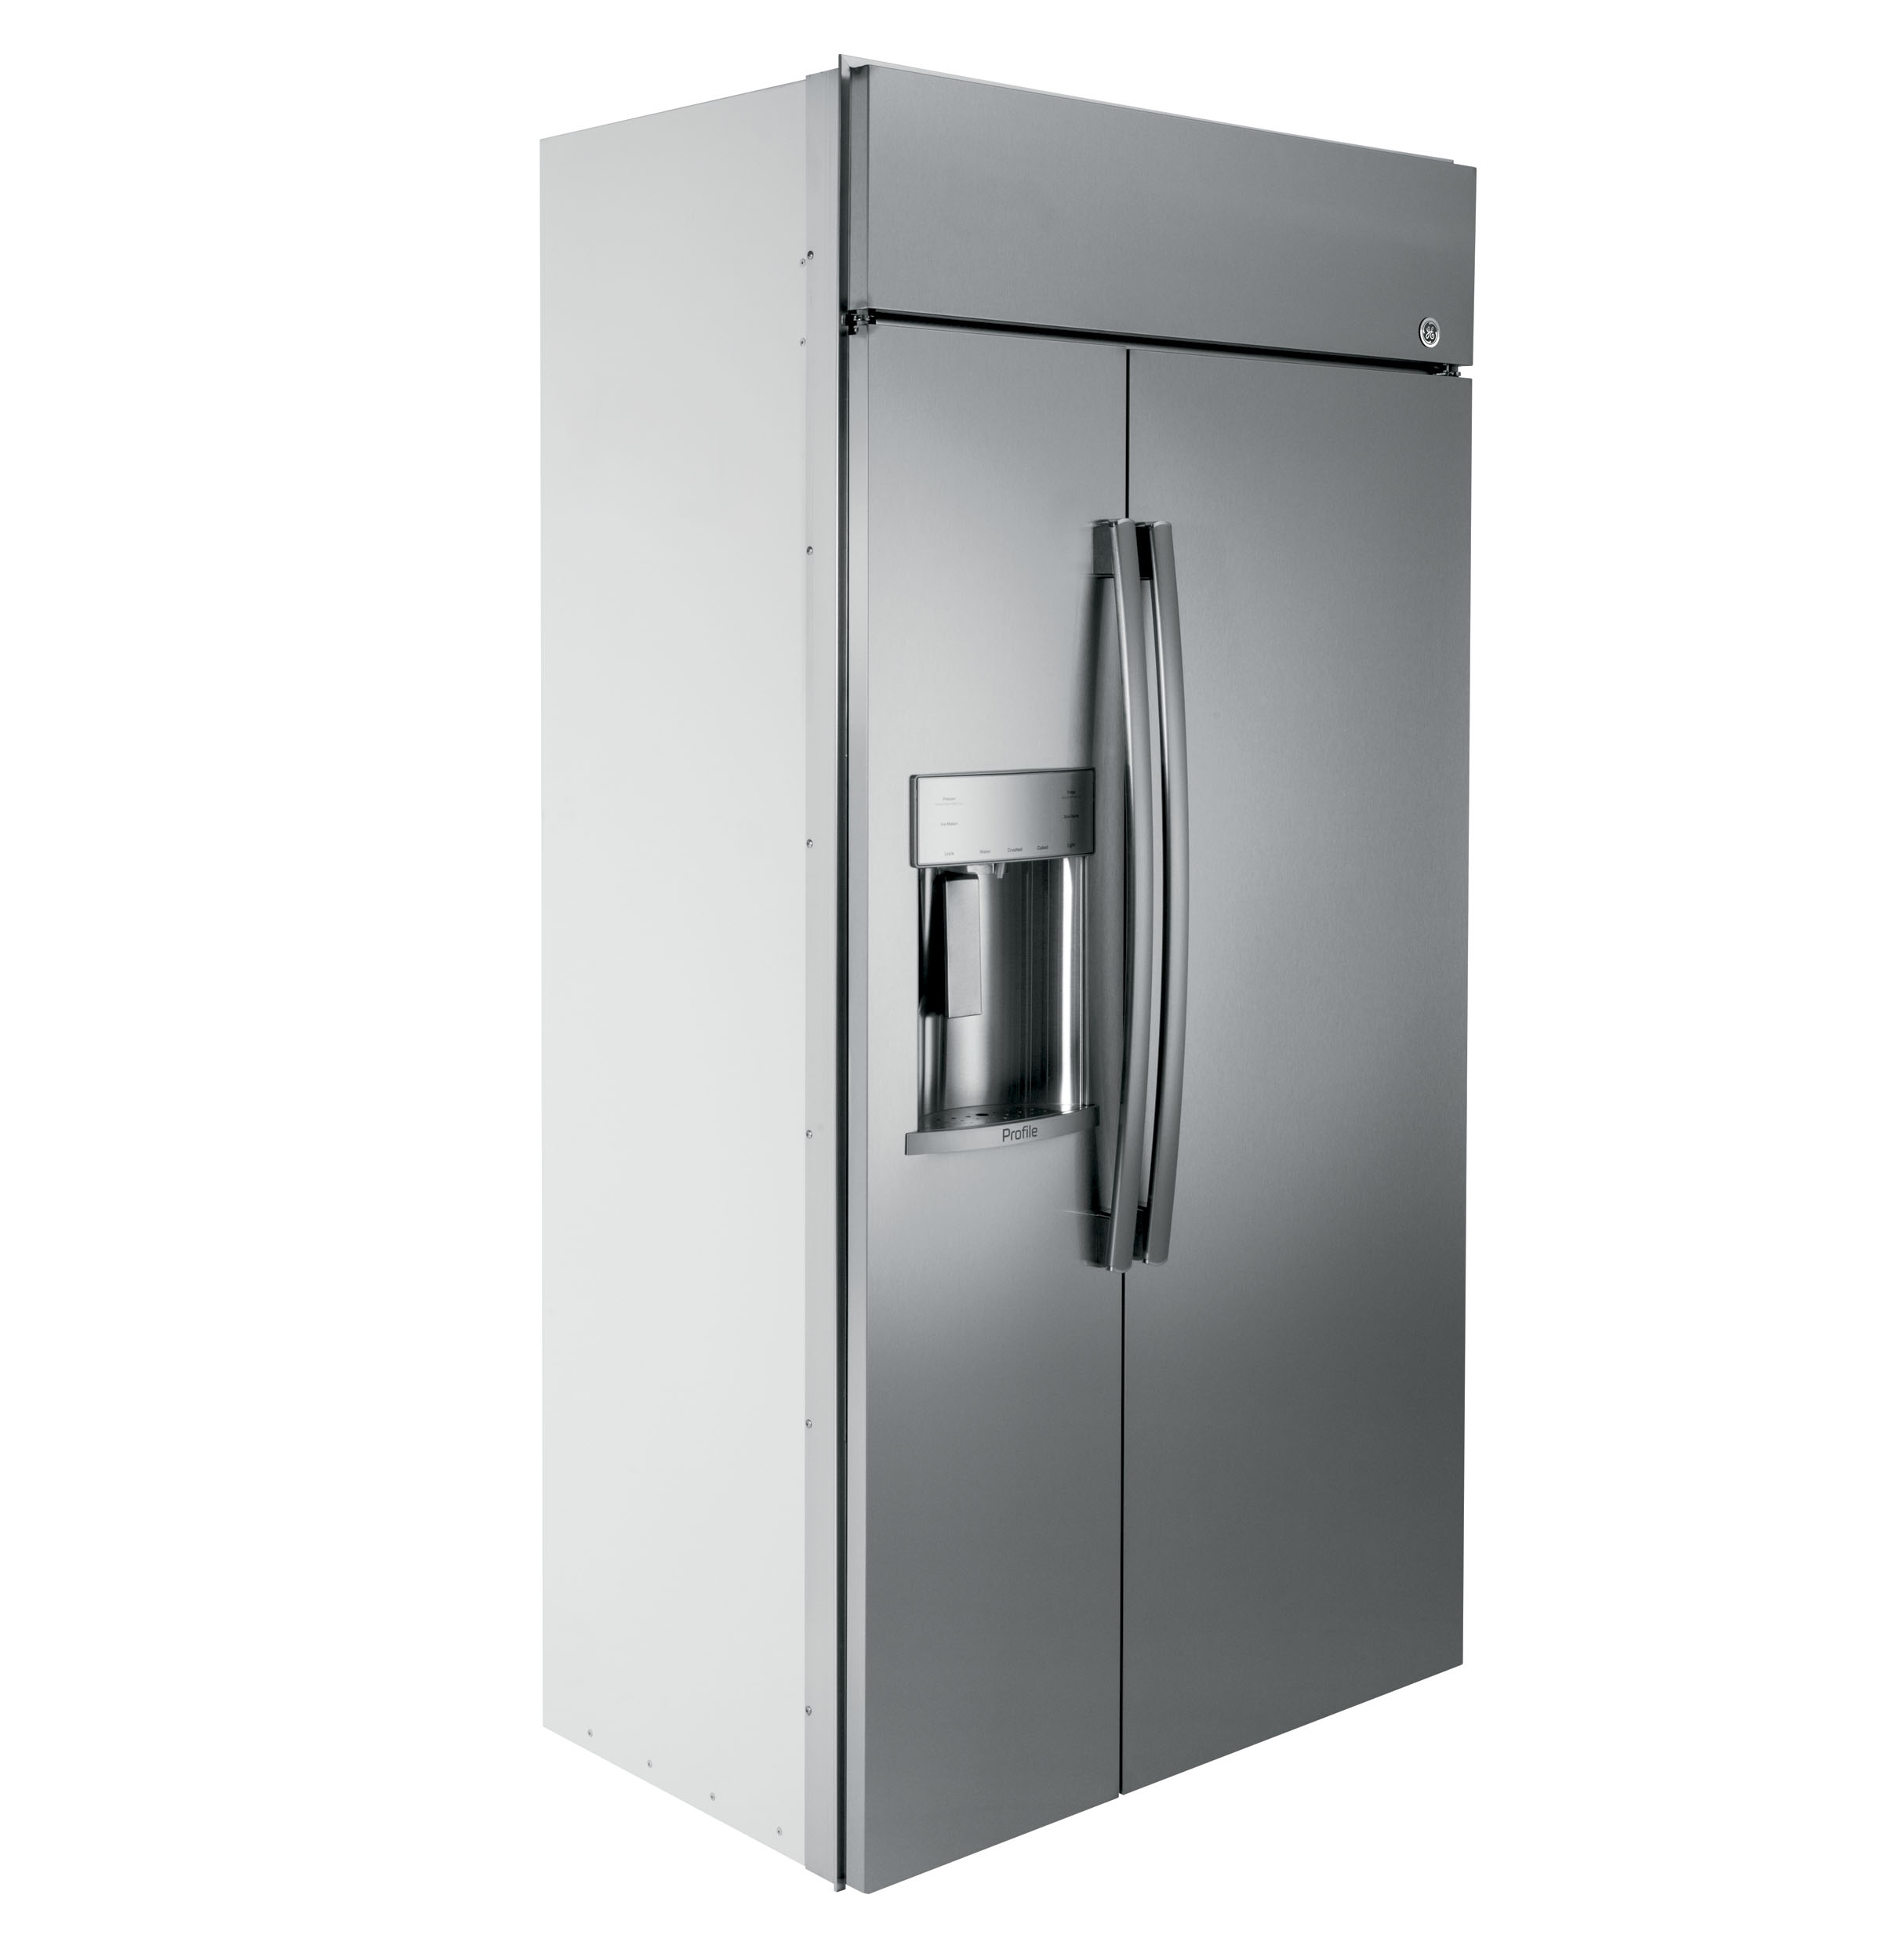 Ge 30 inch side by side white refrigerator -  Product Image Product Image